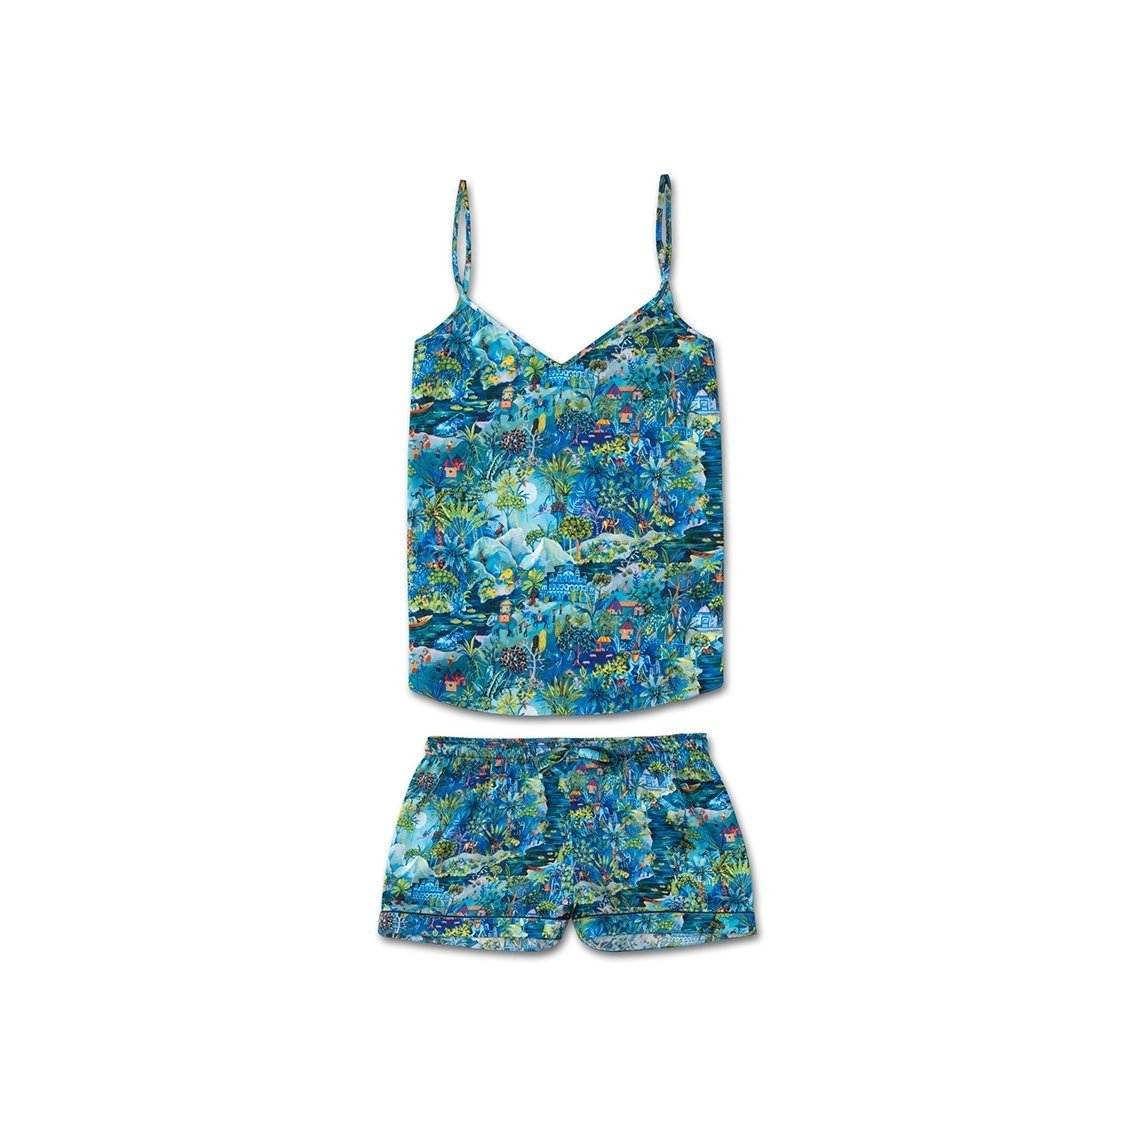 Women's Cami Short Pyjama Set Brindisi 24 Silk Multi